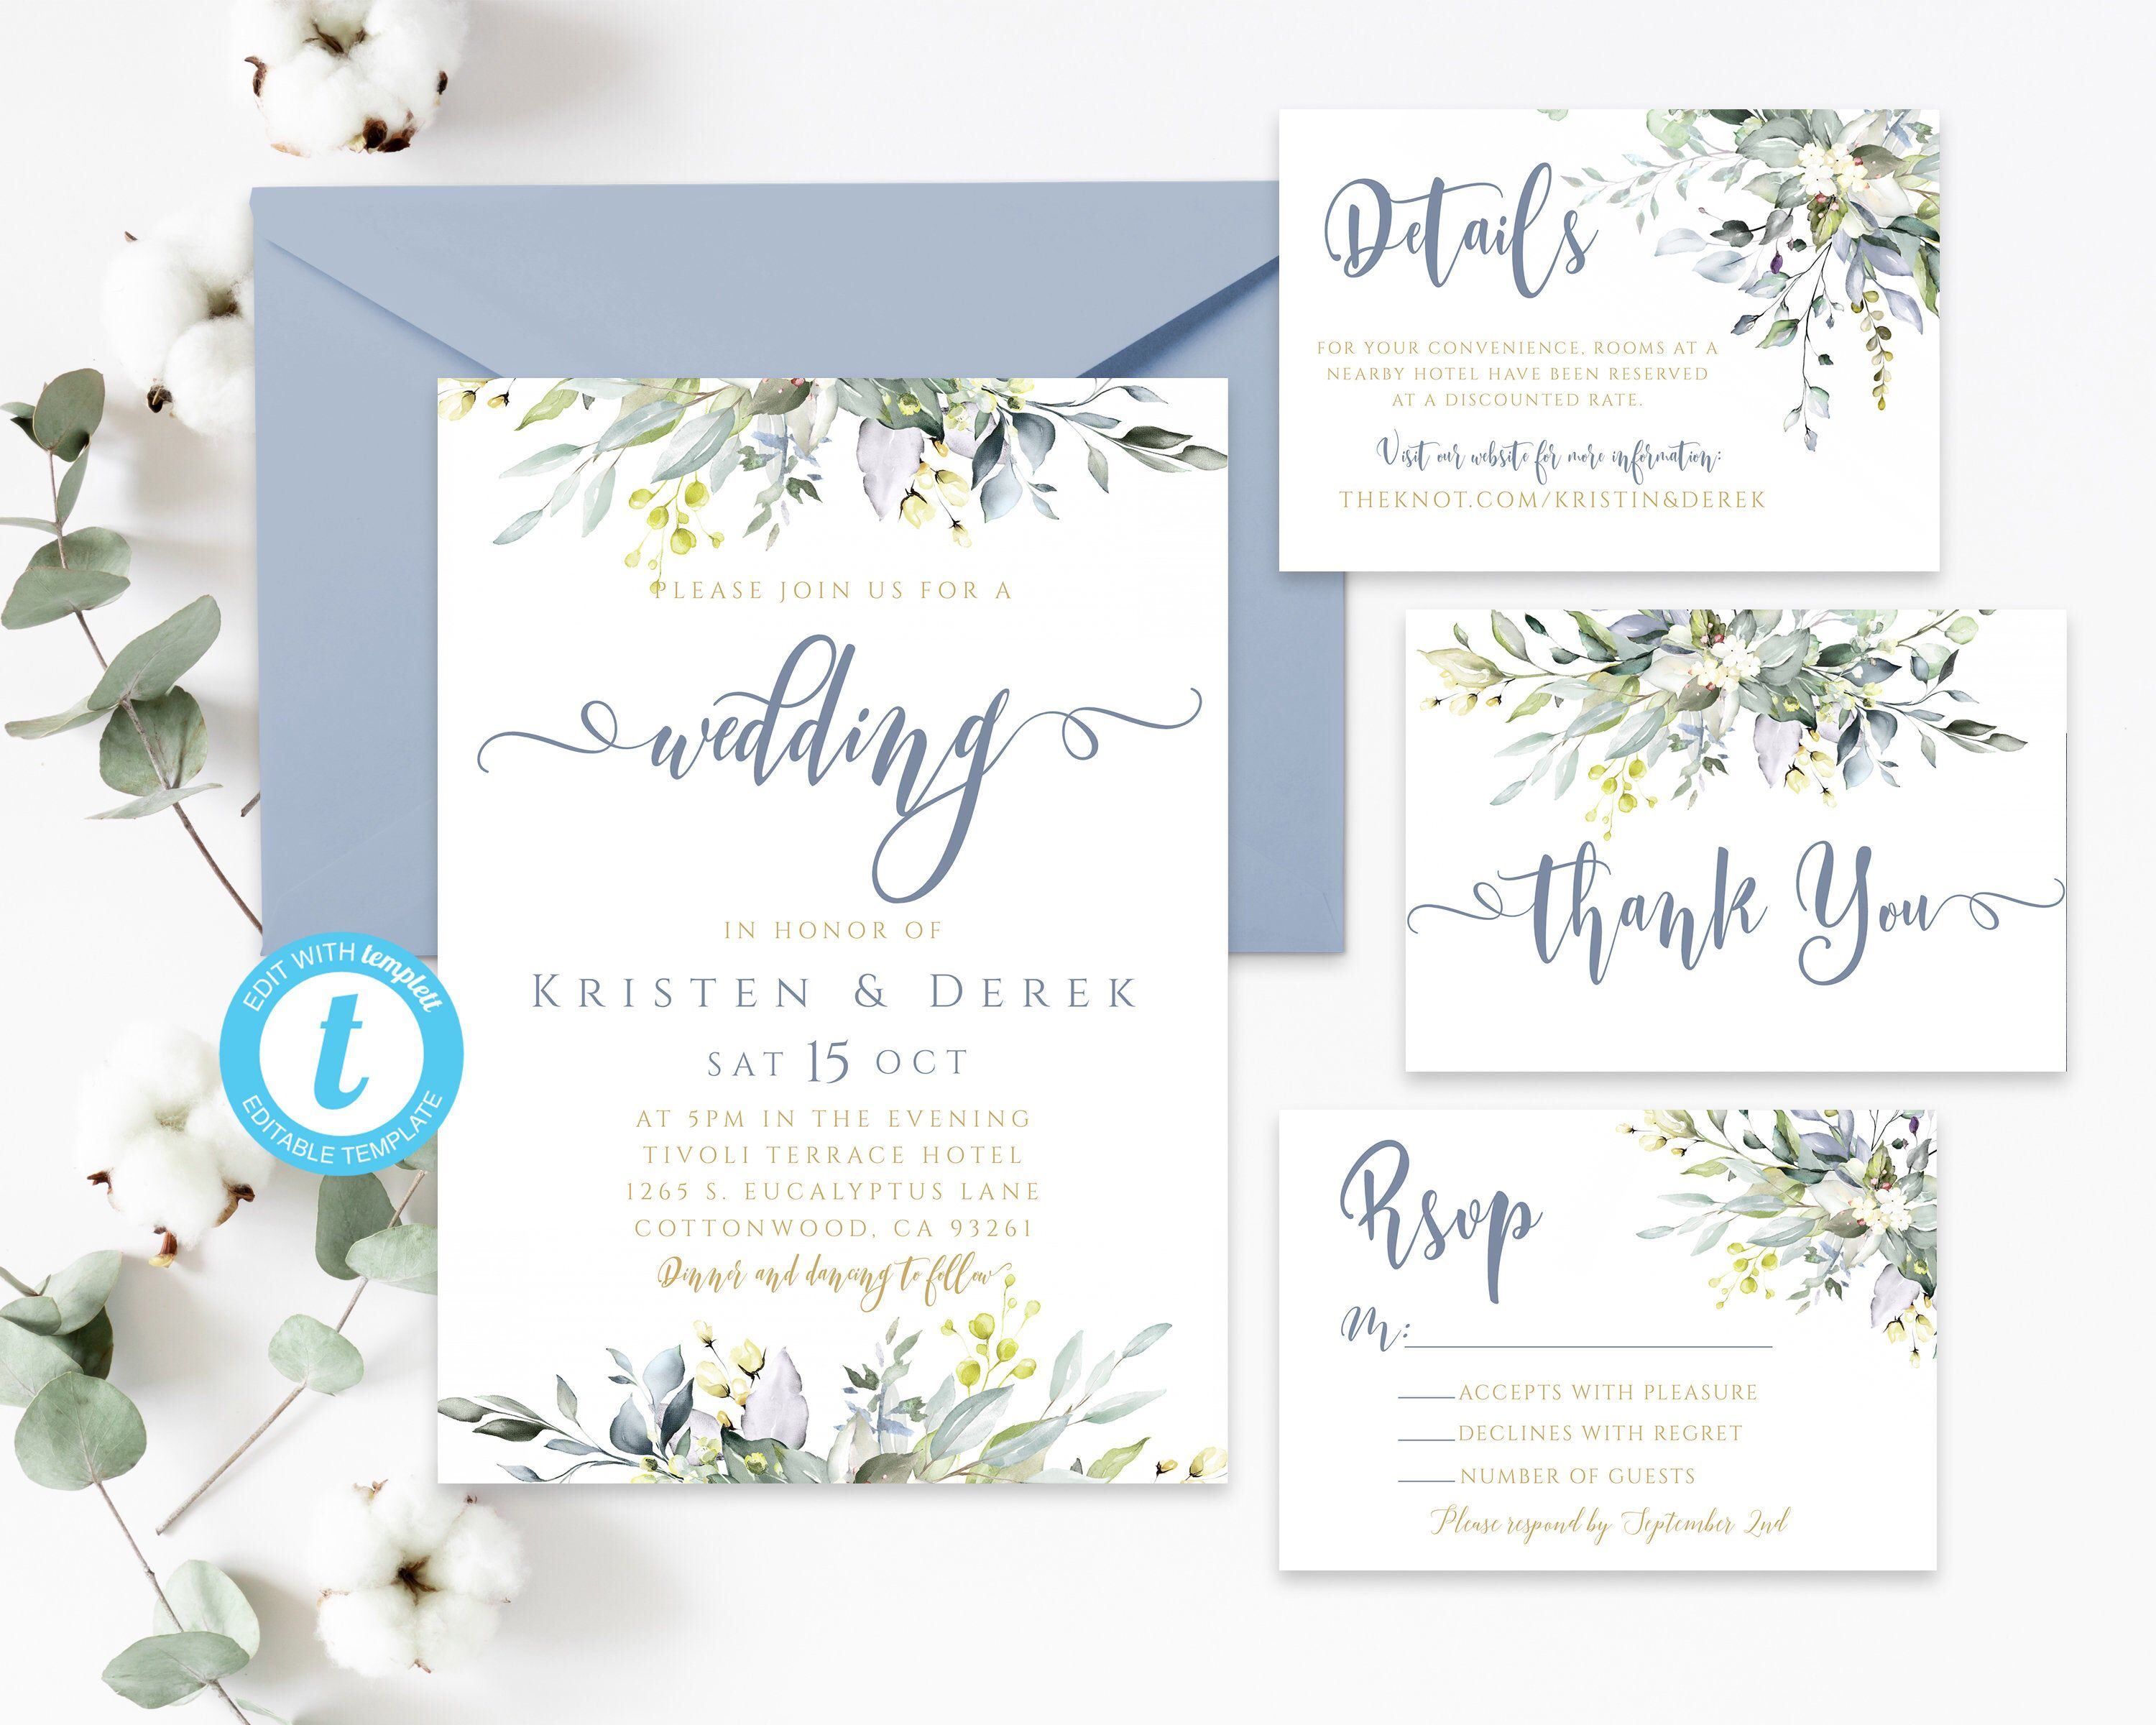 50 Things Not To Forget At Your Wedding Checklist Emmaline Bride Wedding Day Checklist Wedding Checklist Wedding Planning